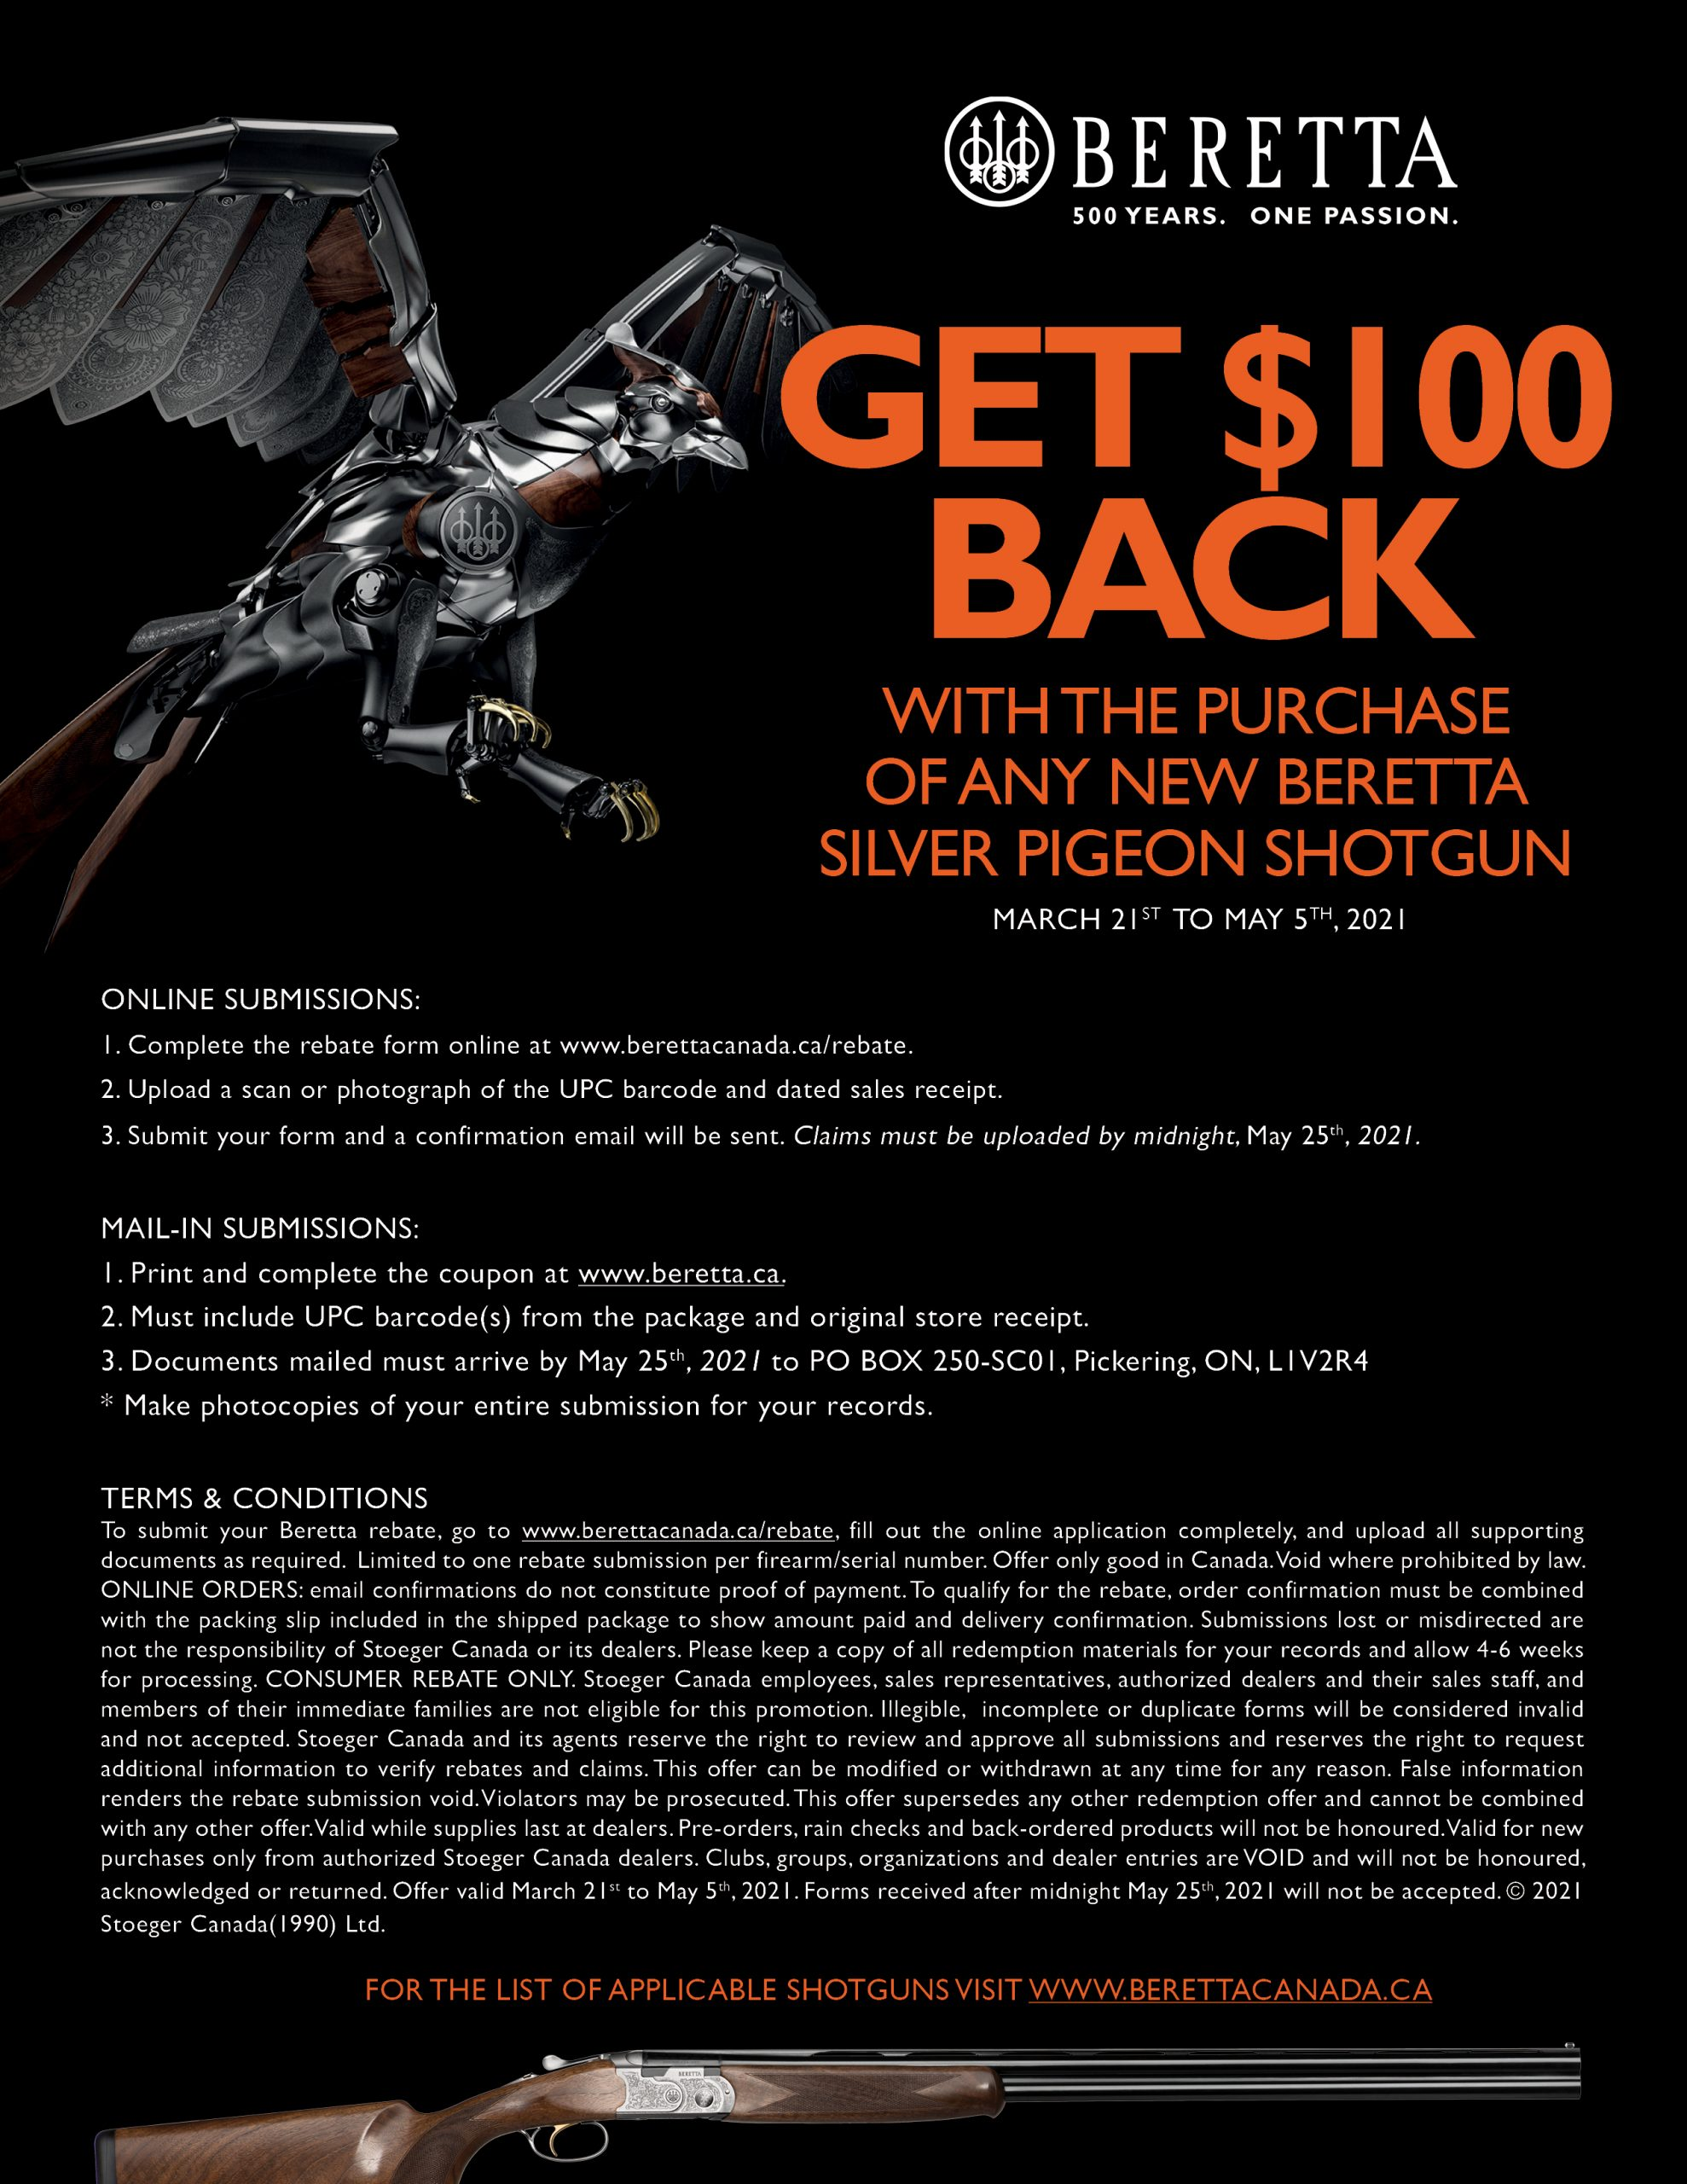 Beretta 100 Off SP 2021 Terms And Conditions